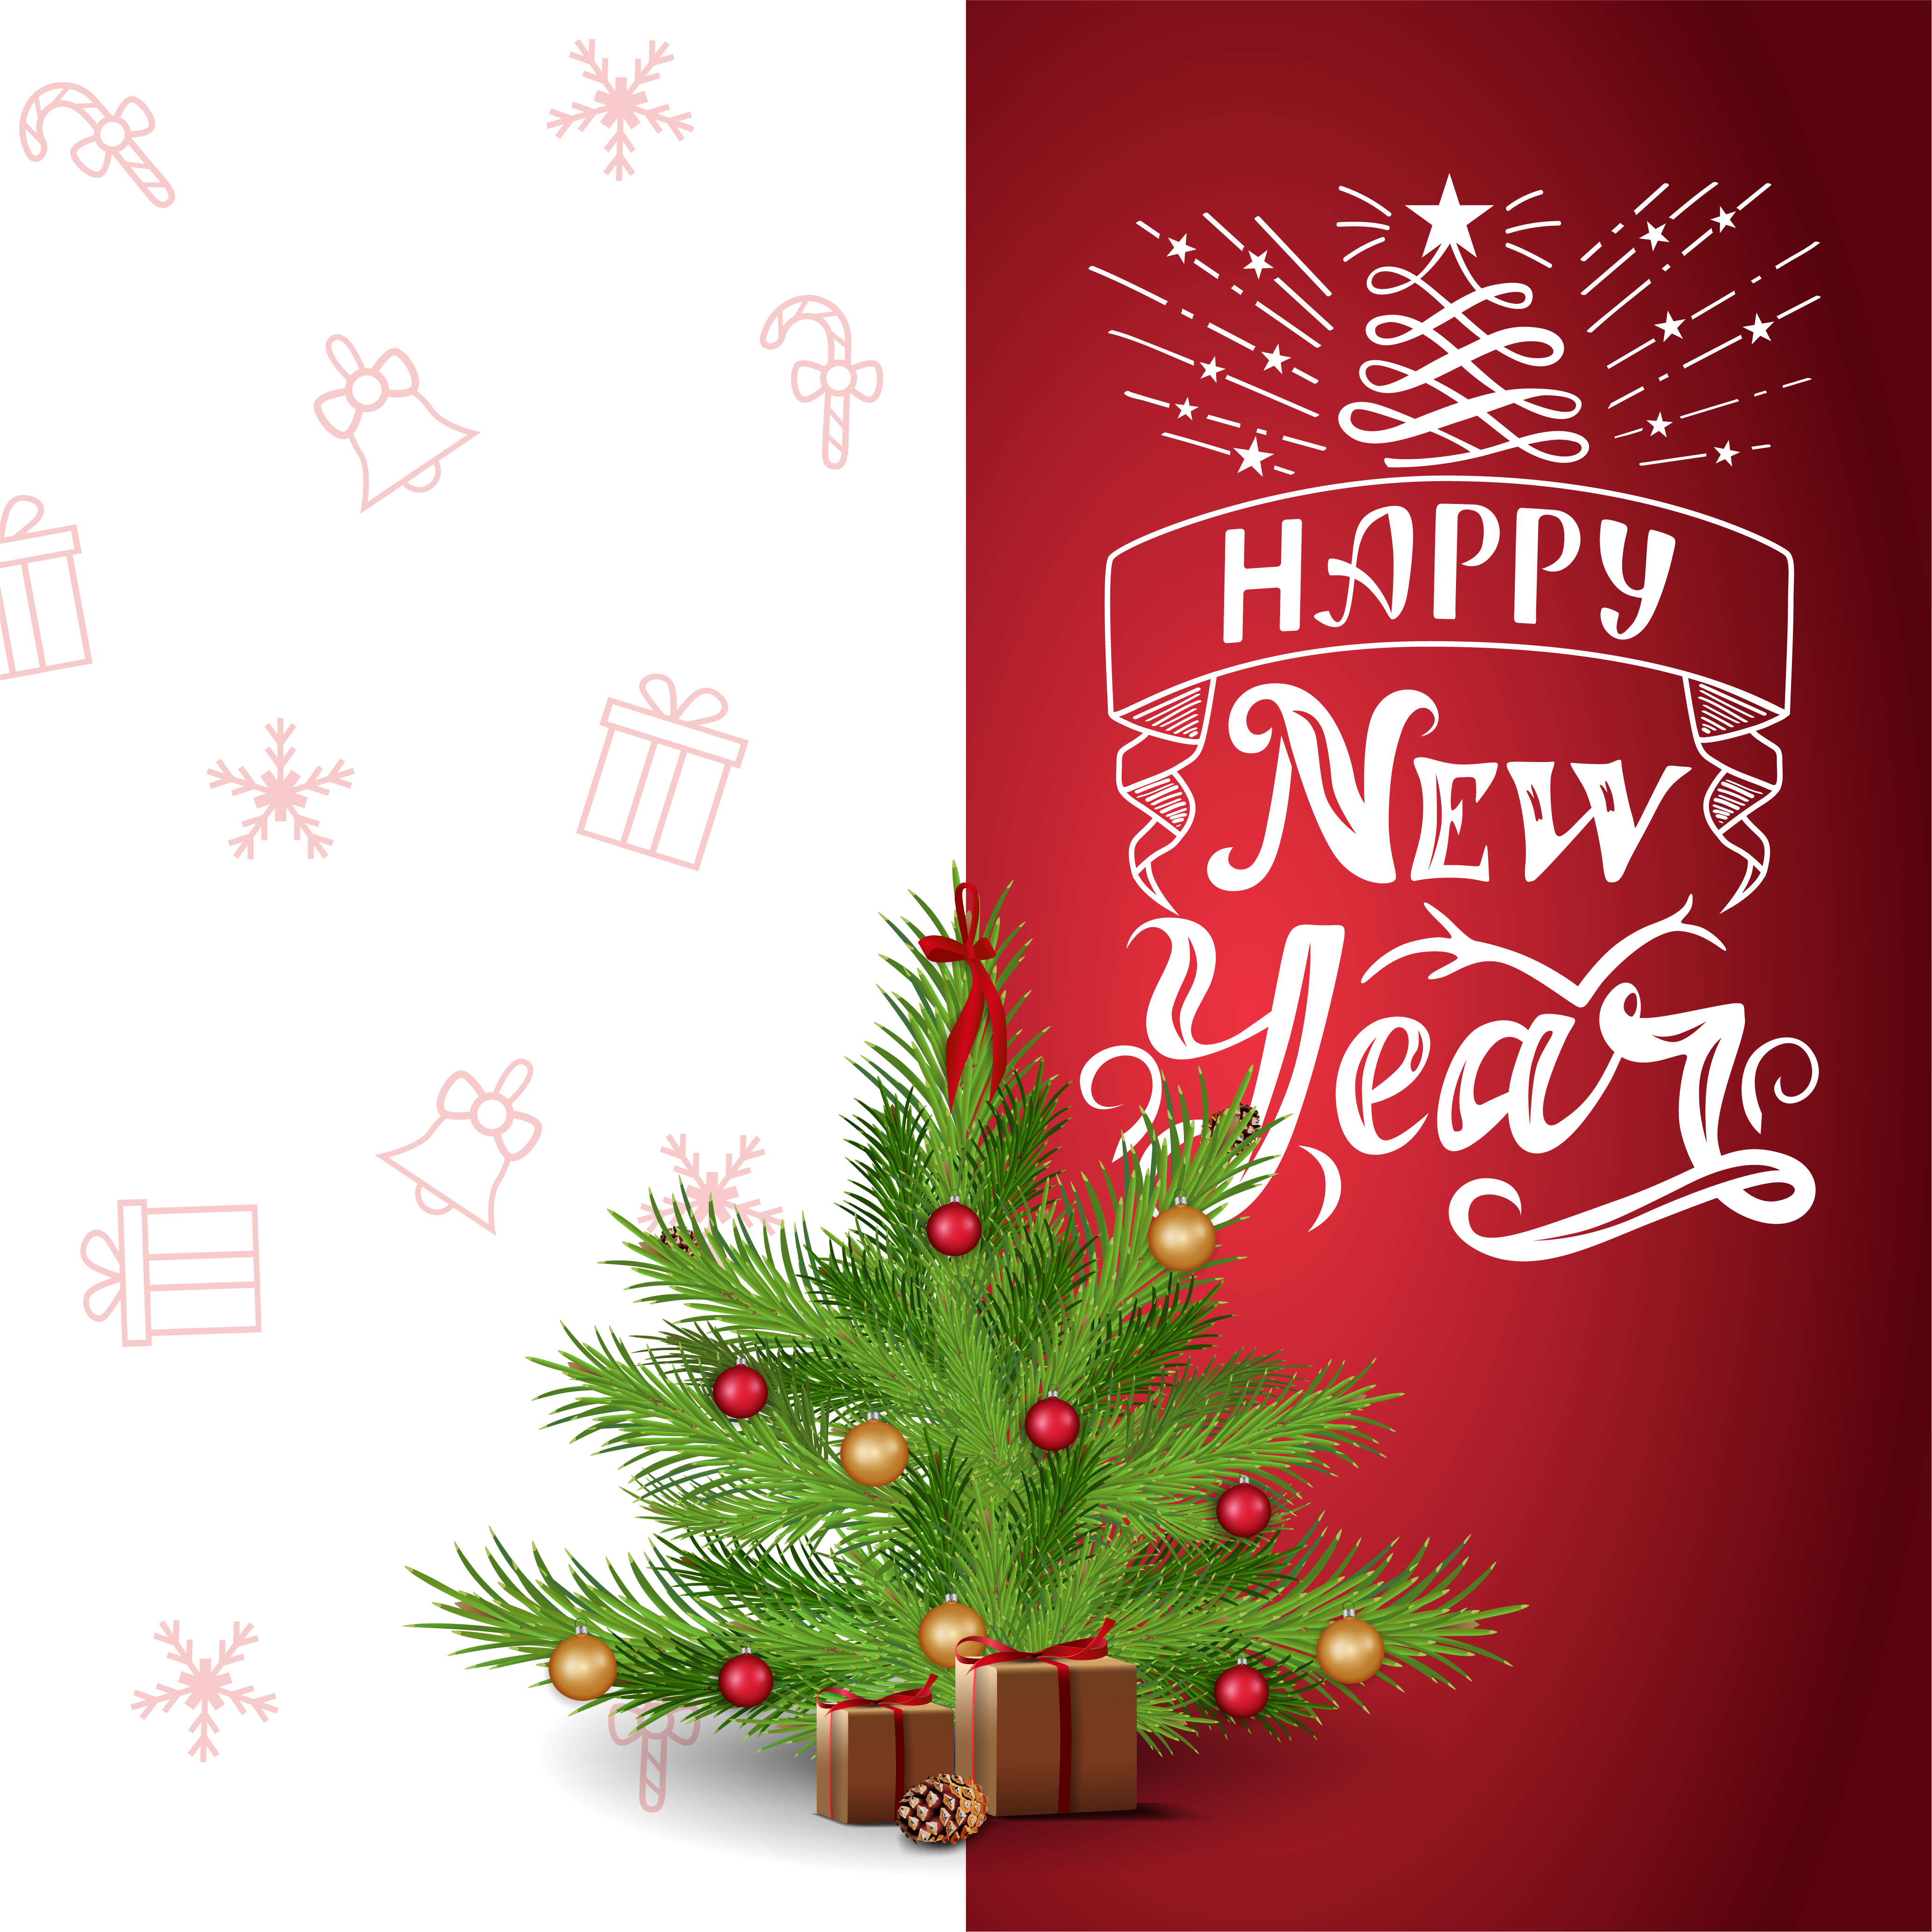 Happy New Year Red And White Postcard With Beautiful Lettering And Cartoon Christmas Tree Download Free Vectors Clipart Graphics Vector Art Download 2,504 cartoon christmas tree free vectors. vecteezy